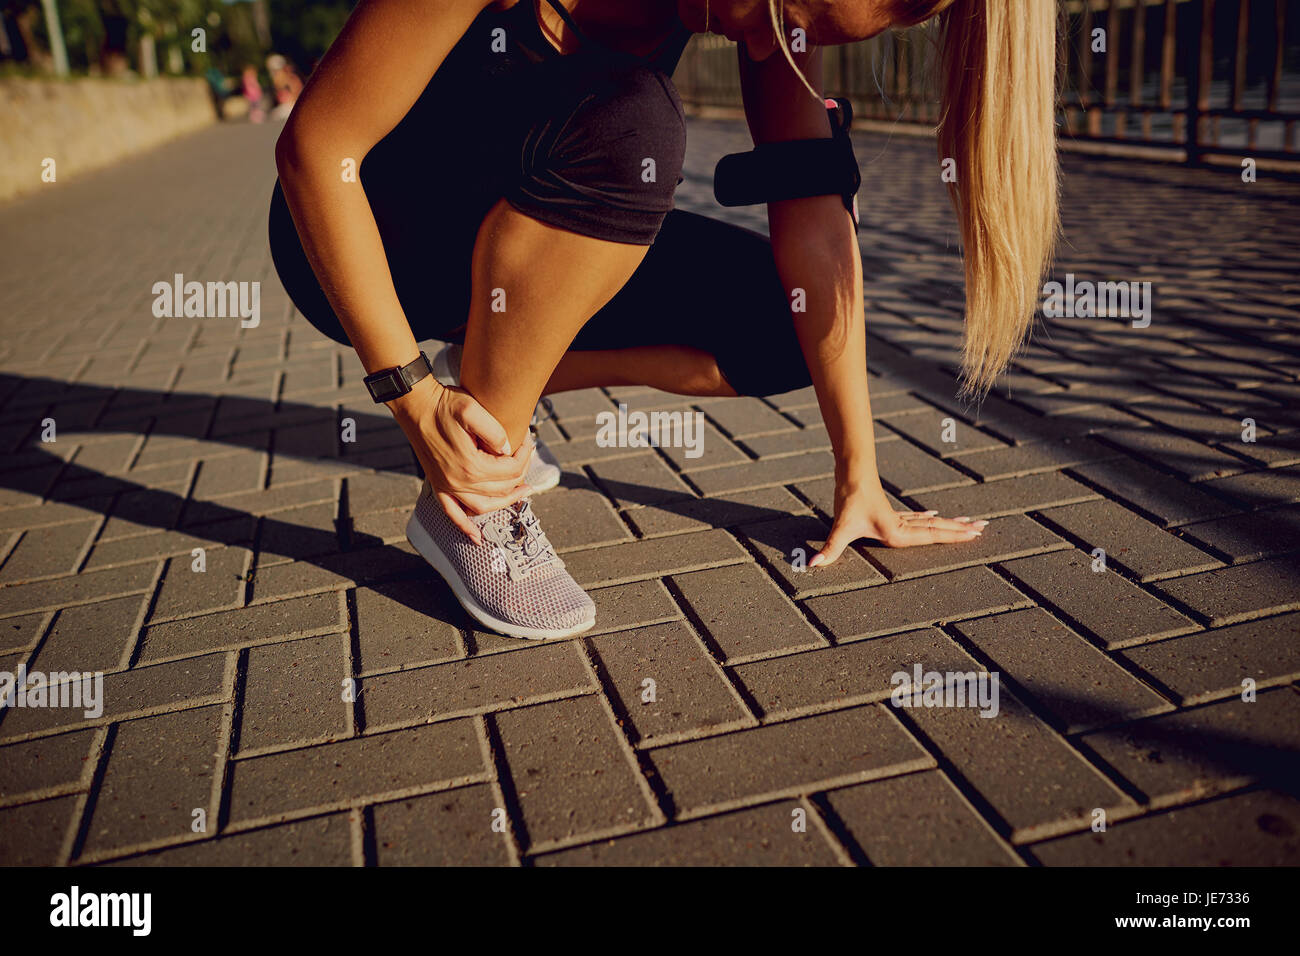 Trauma to the foot of the runner - Stock Image